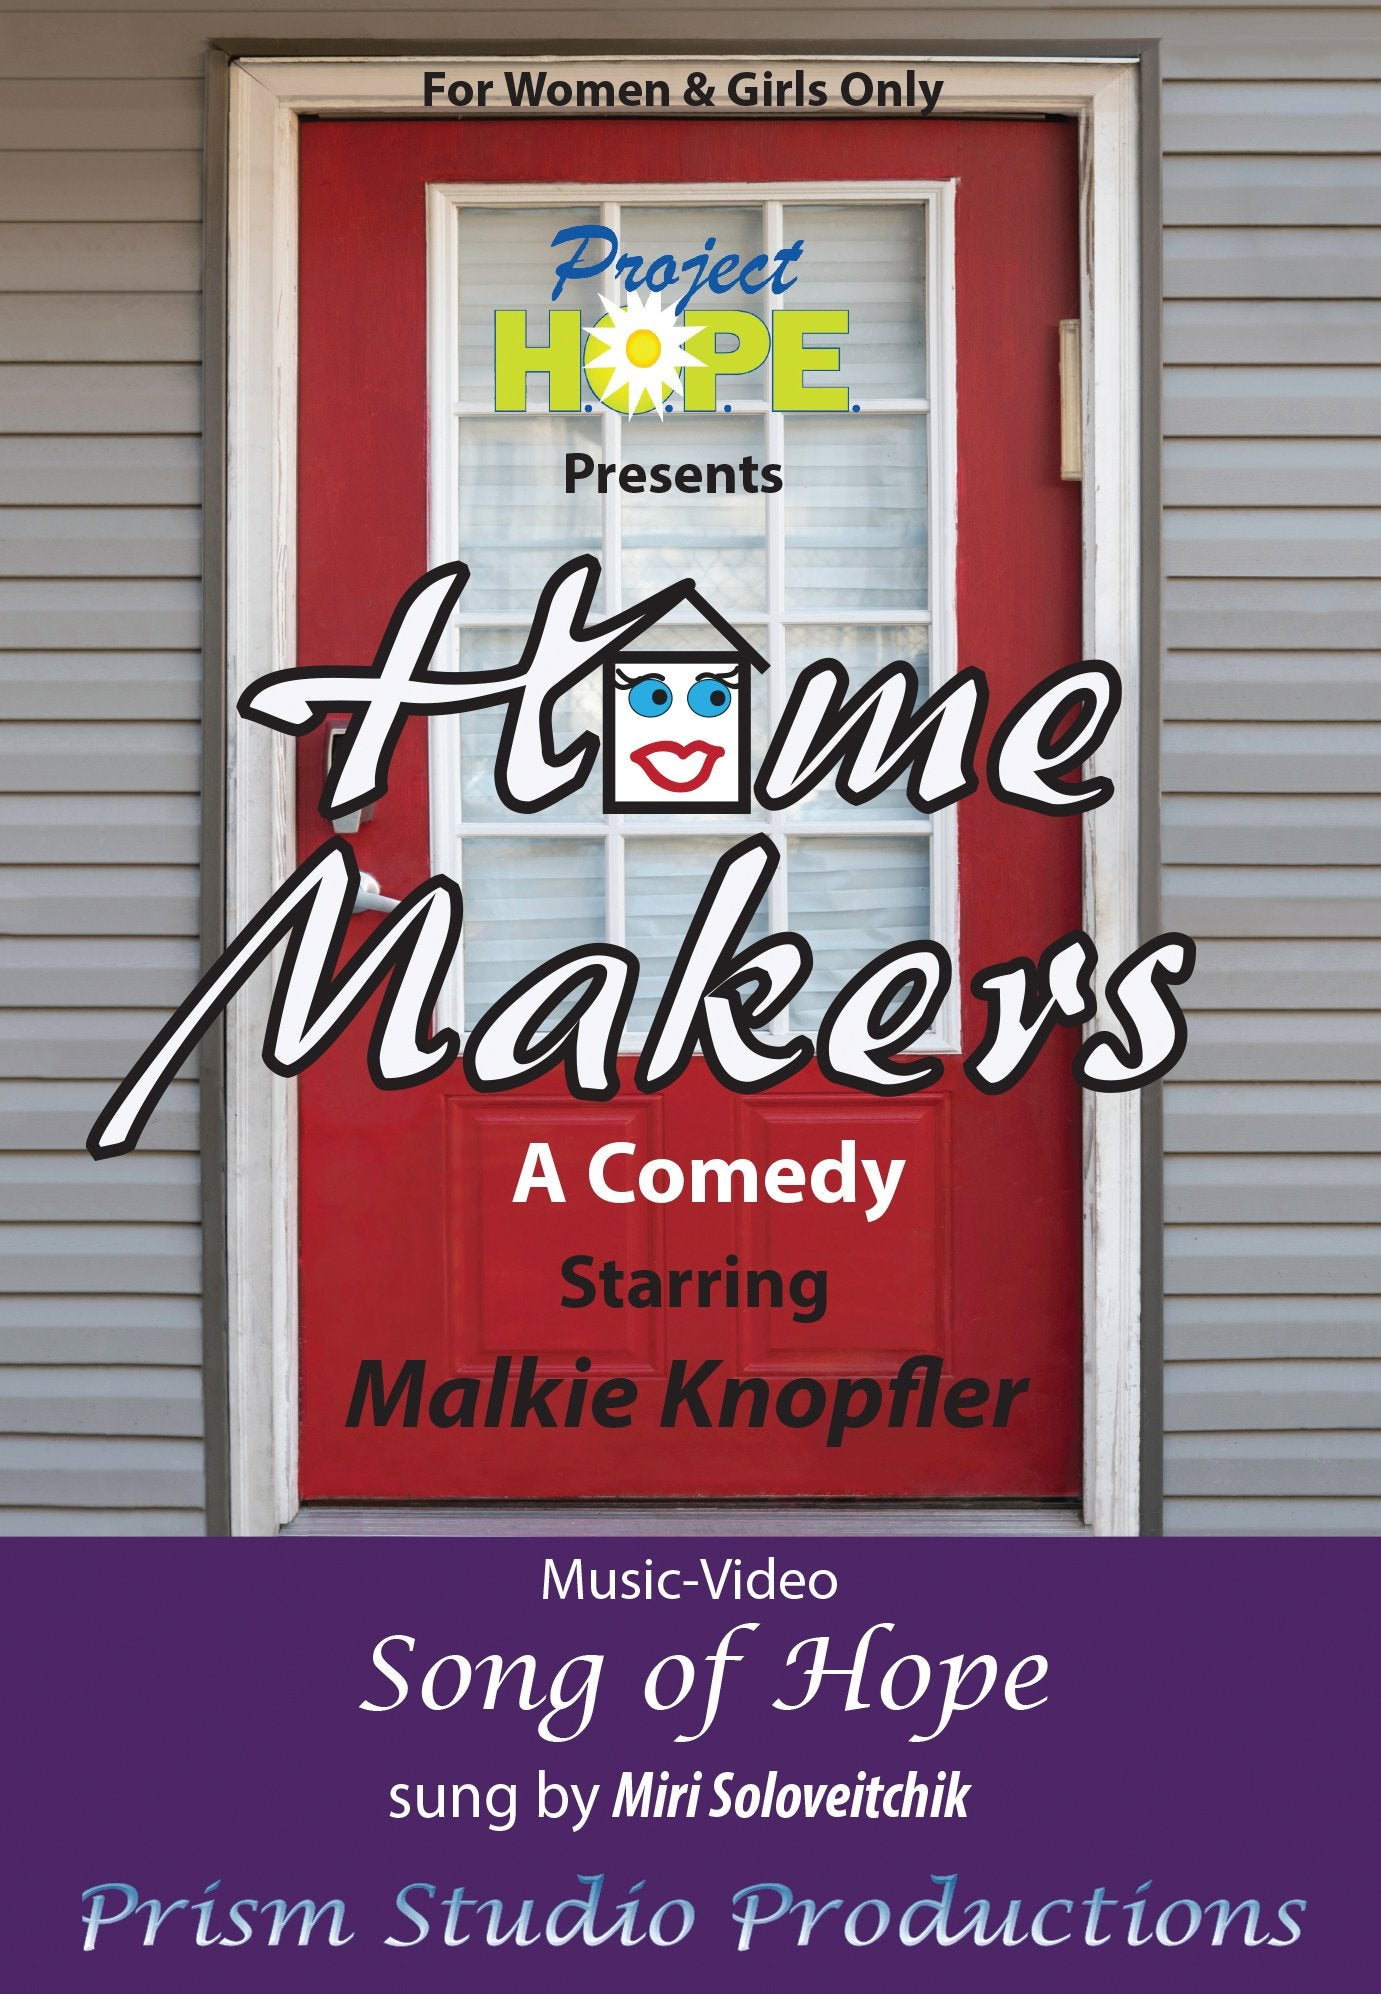 Project Hope - Homemakers (video)